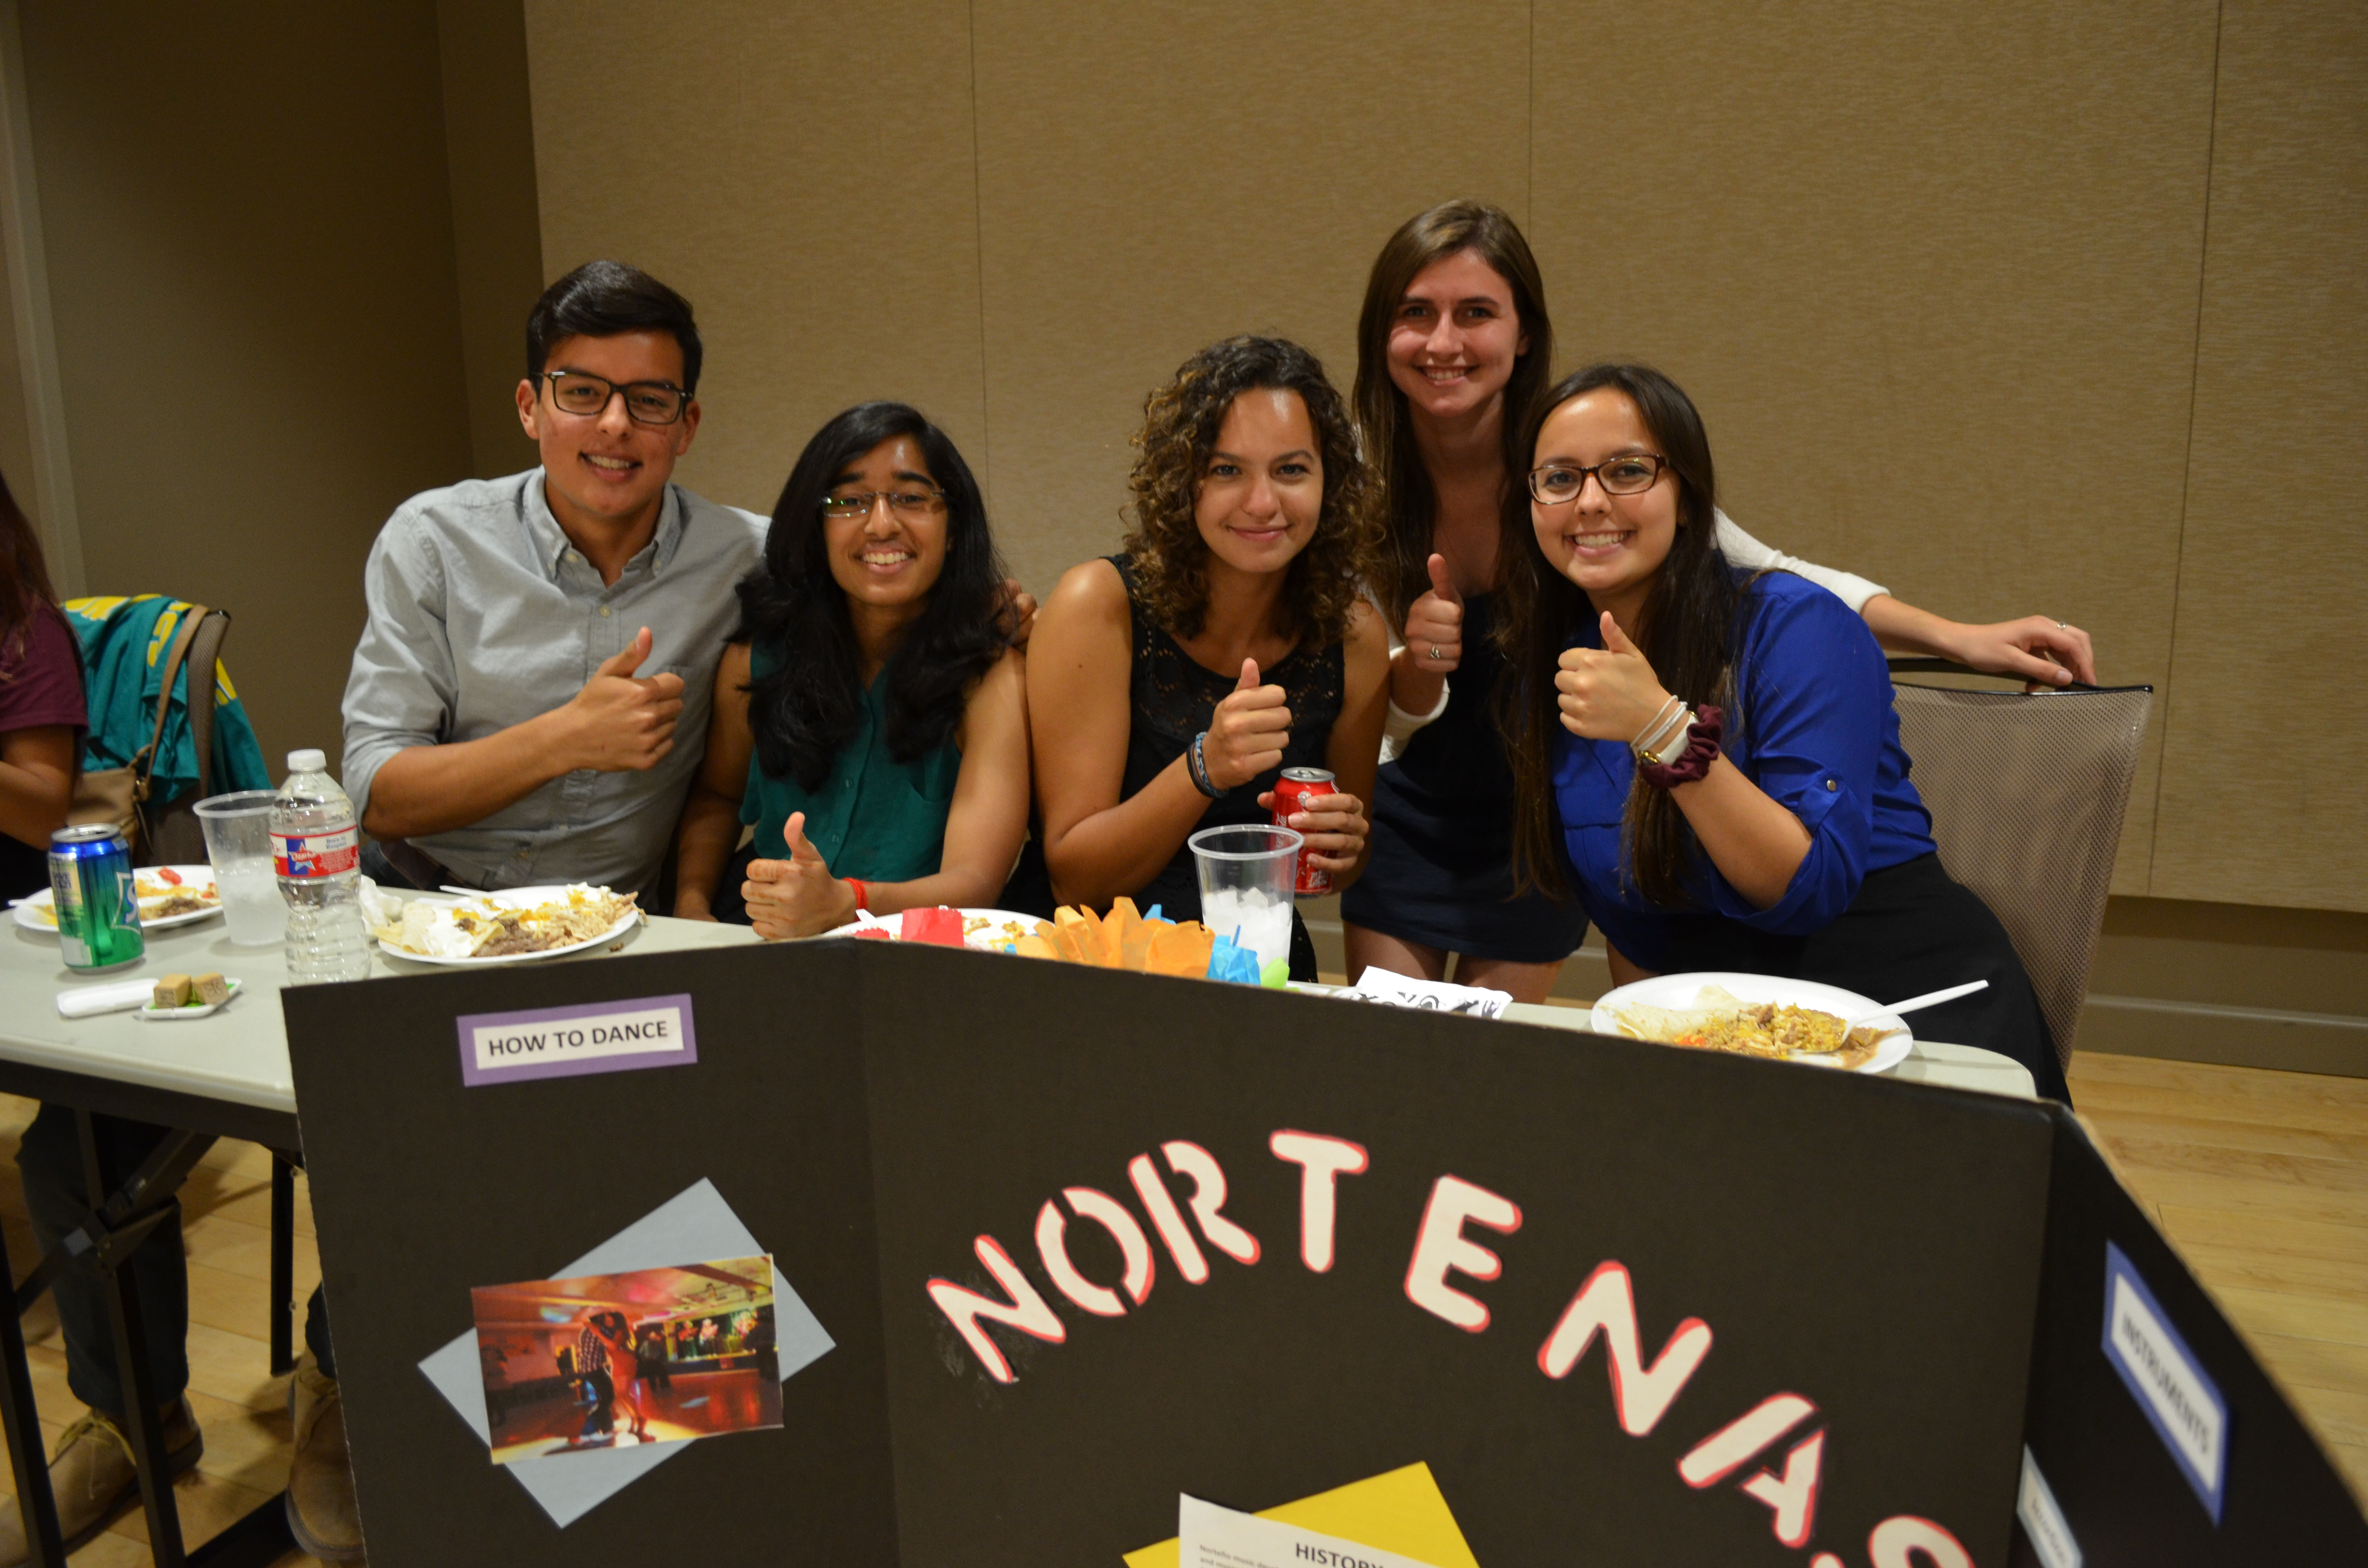 Students eating at Latin Dance Night event